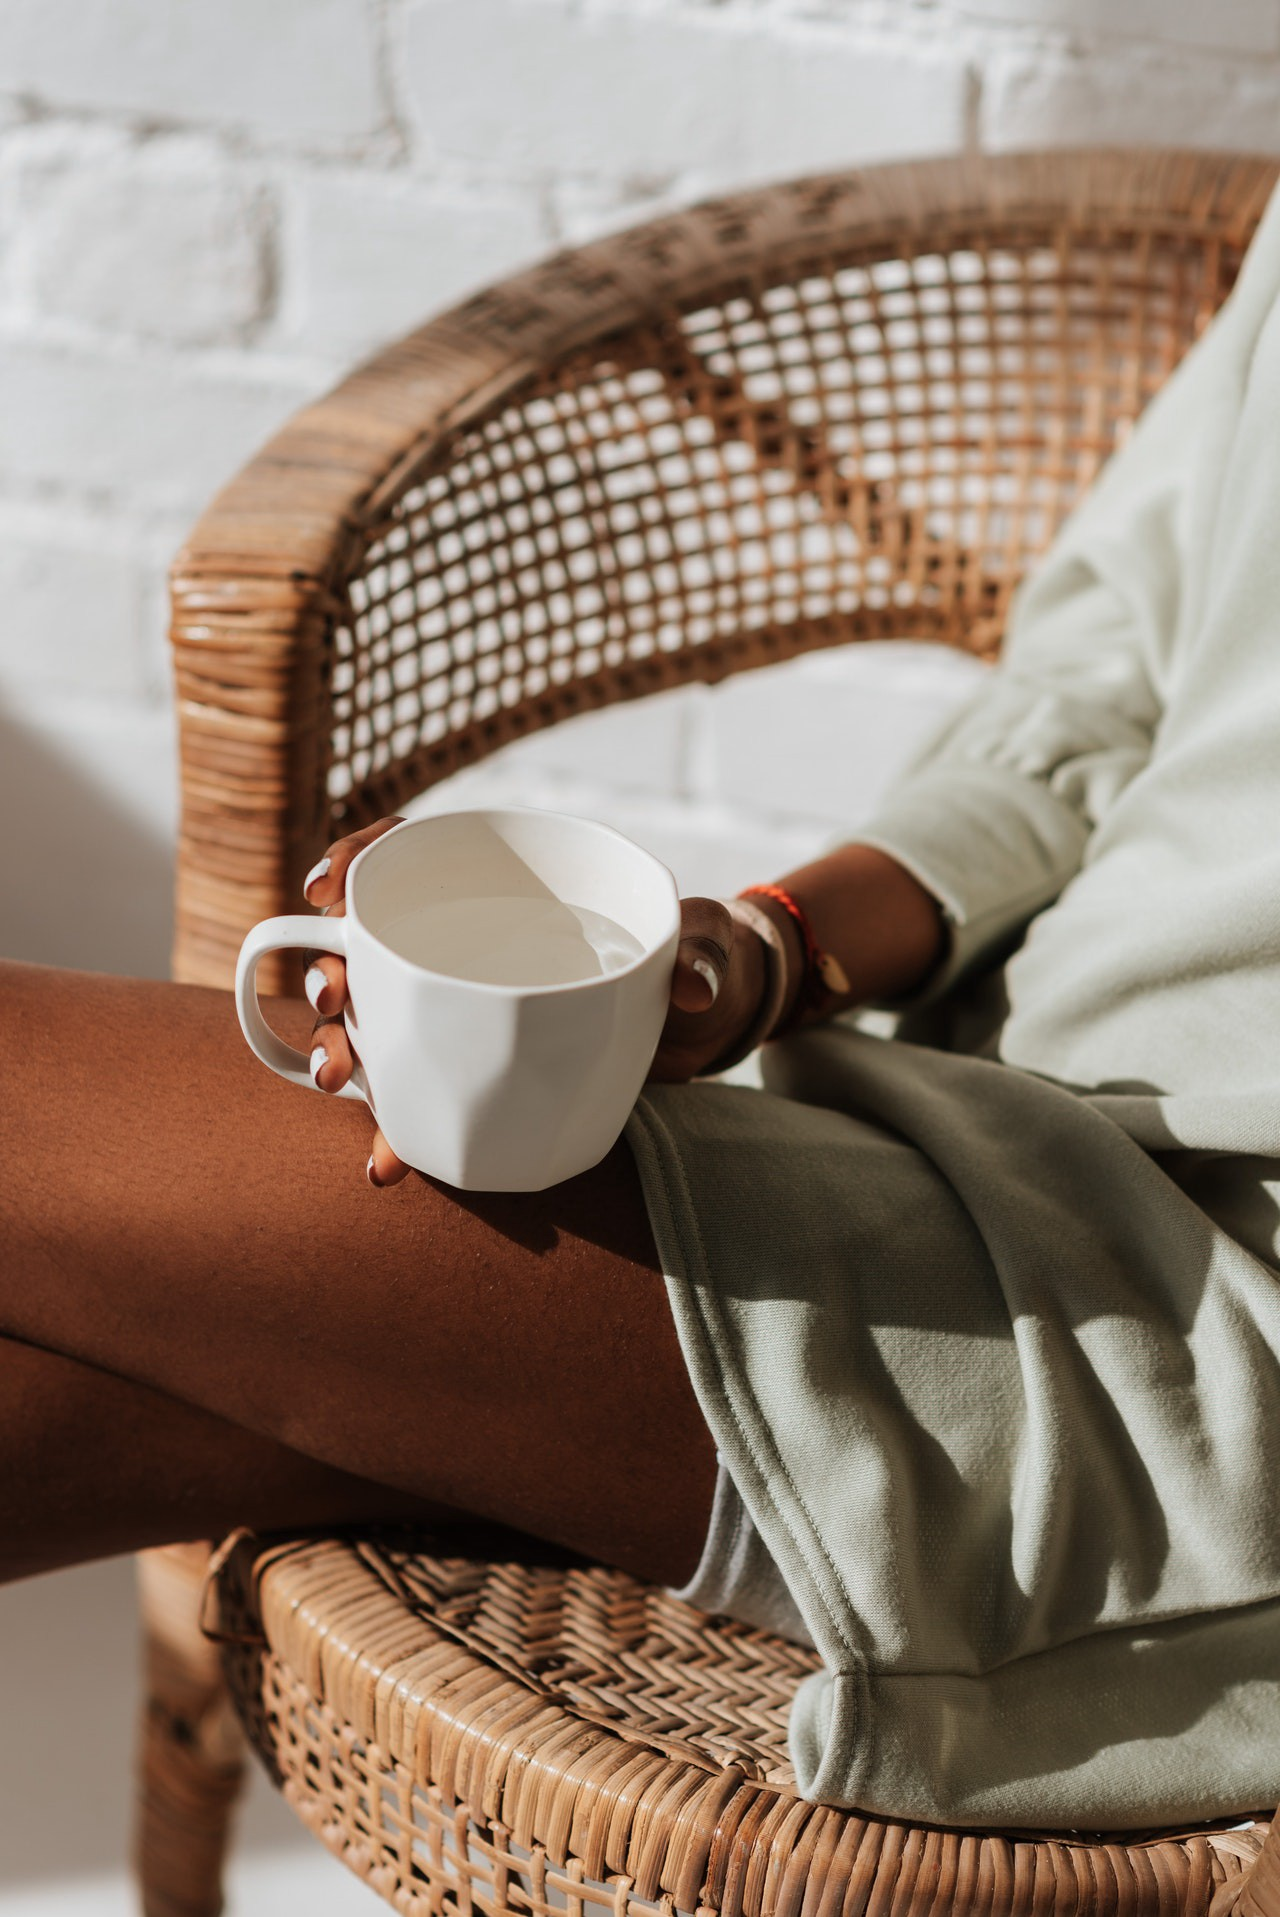 Black woman sitting quietly in a chair by herself holding a cup of water